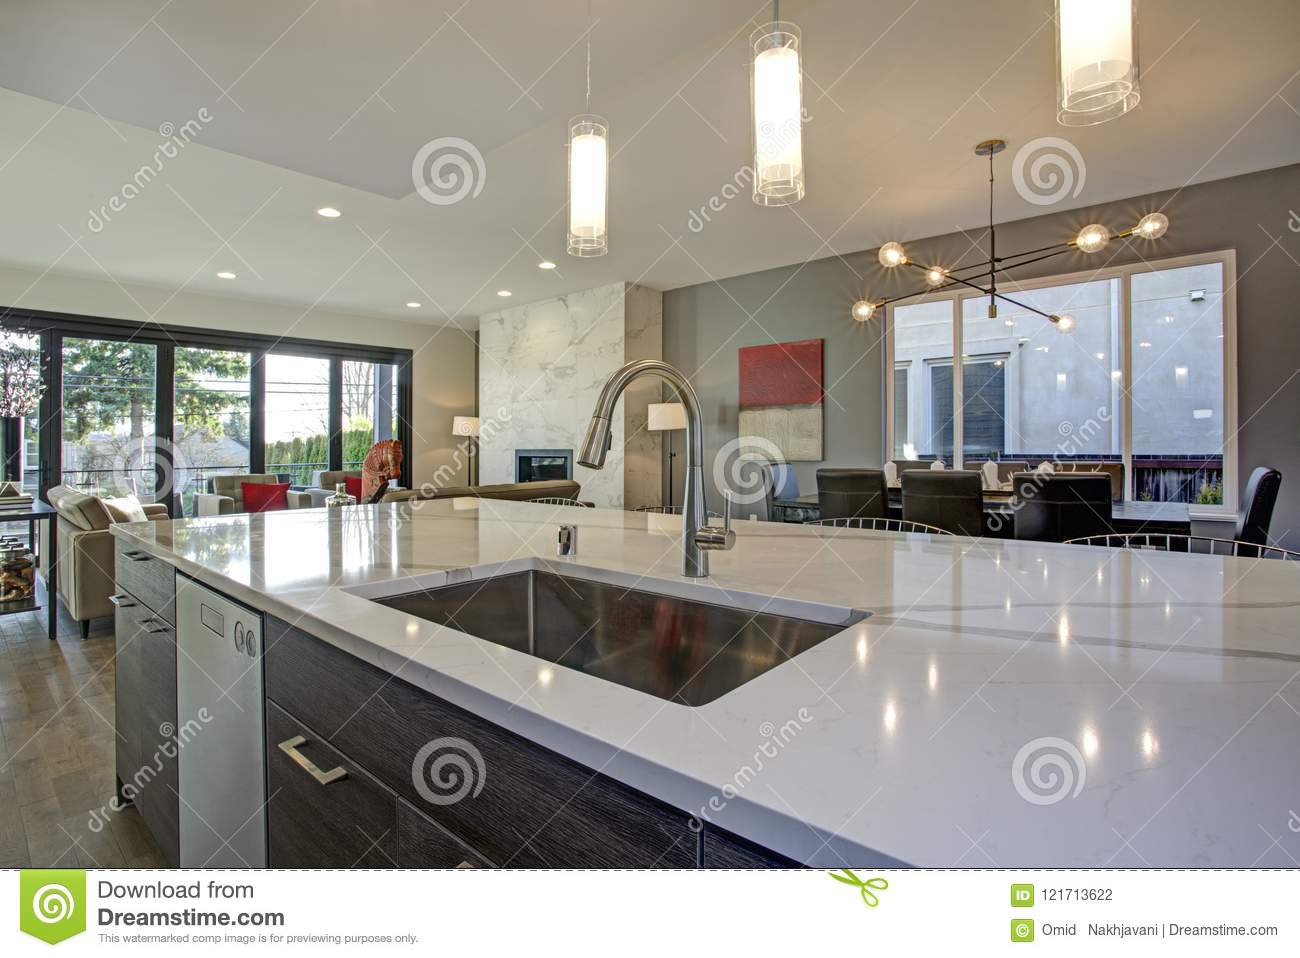 White And Gray Kitchen Room Interior With Open Floor Plan